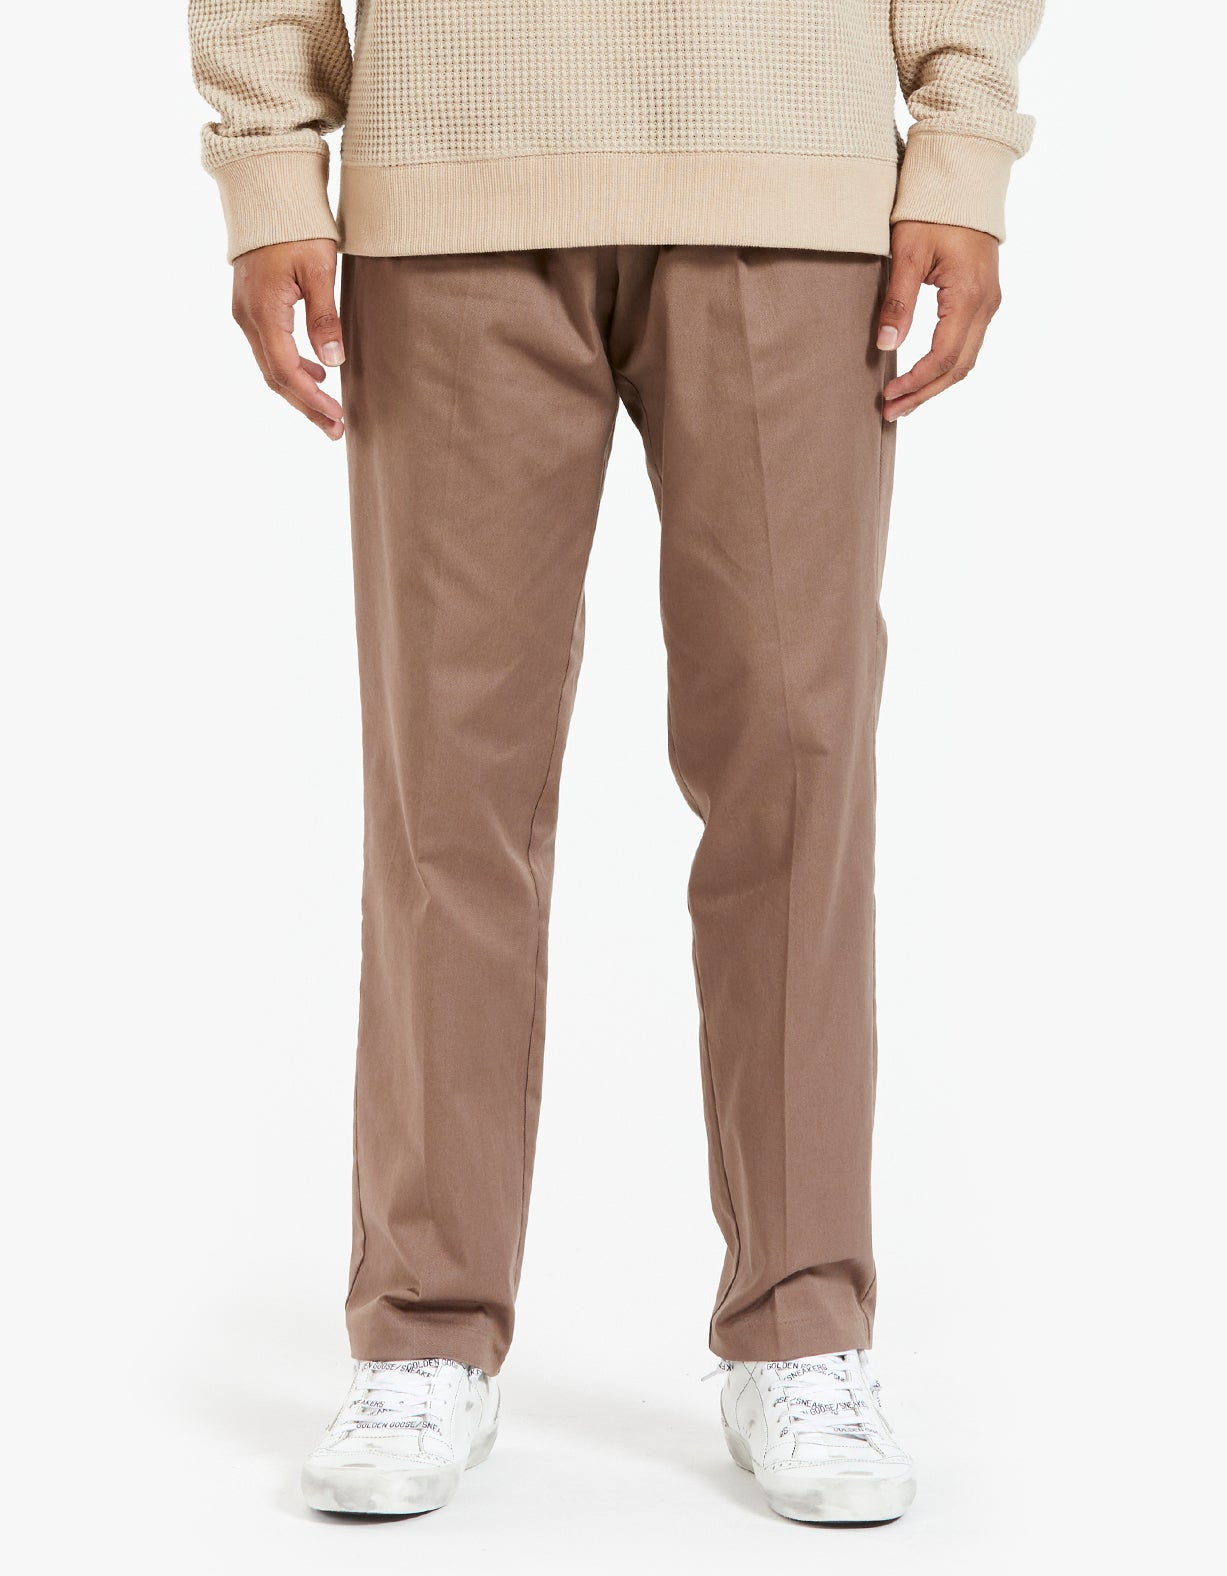 Lincoln Wide Trousers - Caribou